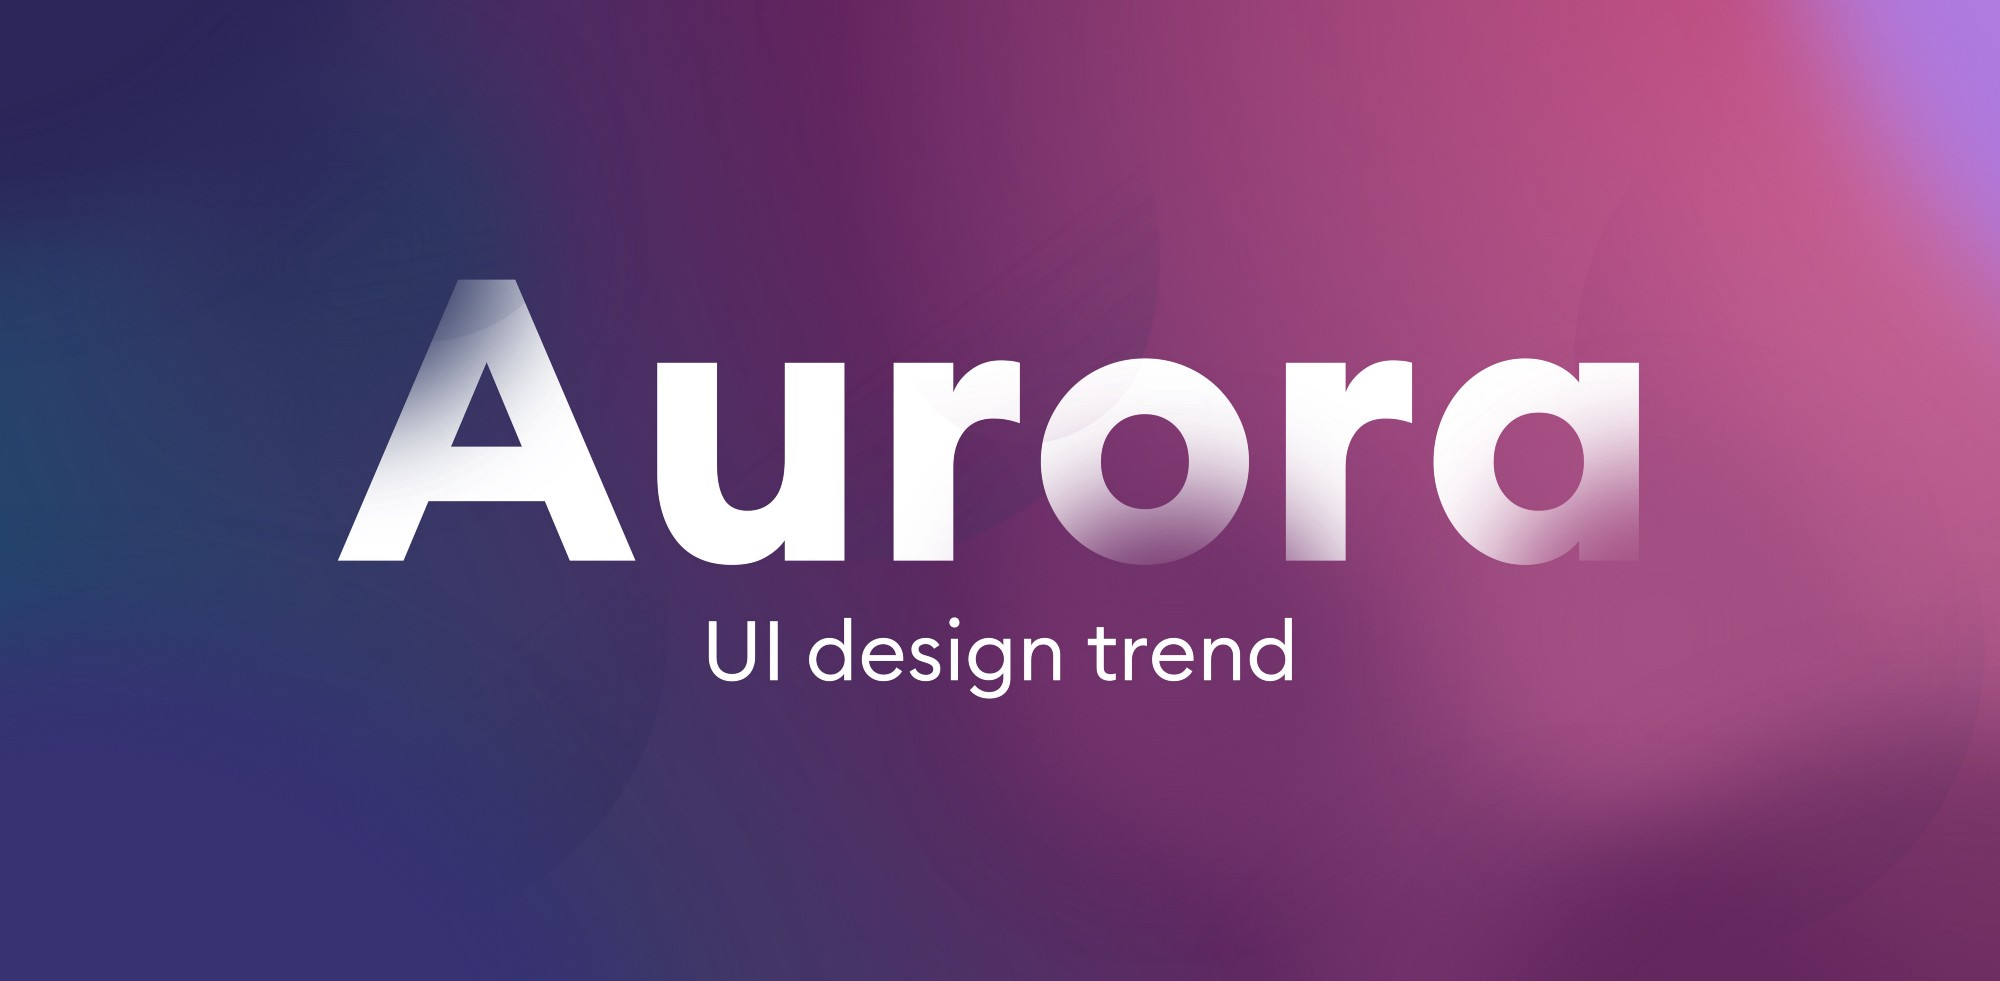 Aurora backgrounds are the new UI design trend for 2021